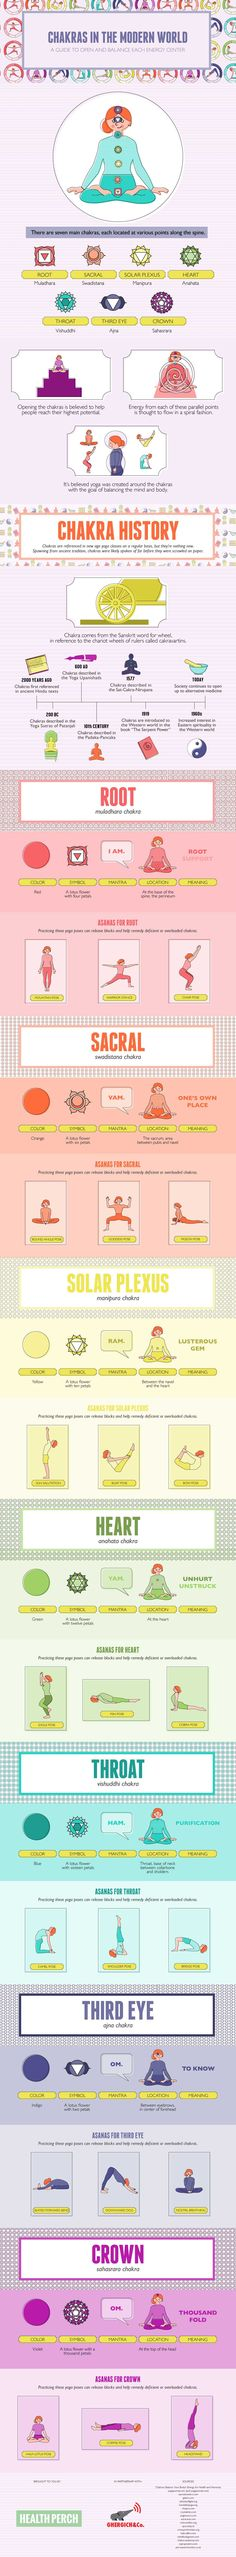 Know Your Chakras